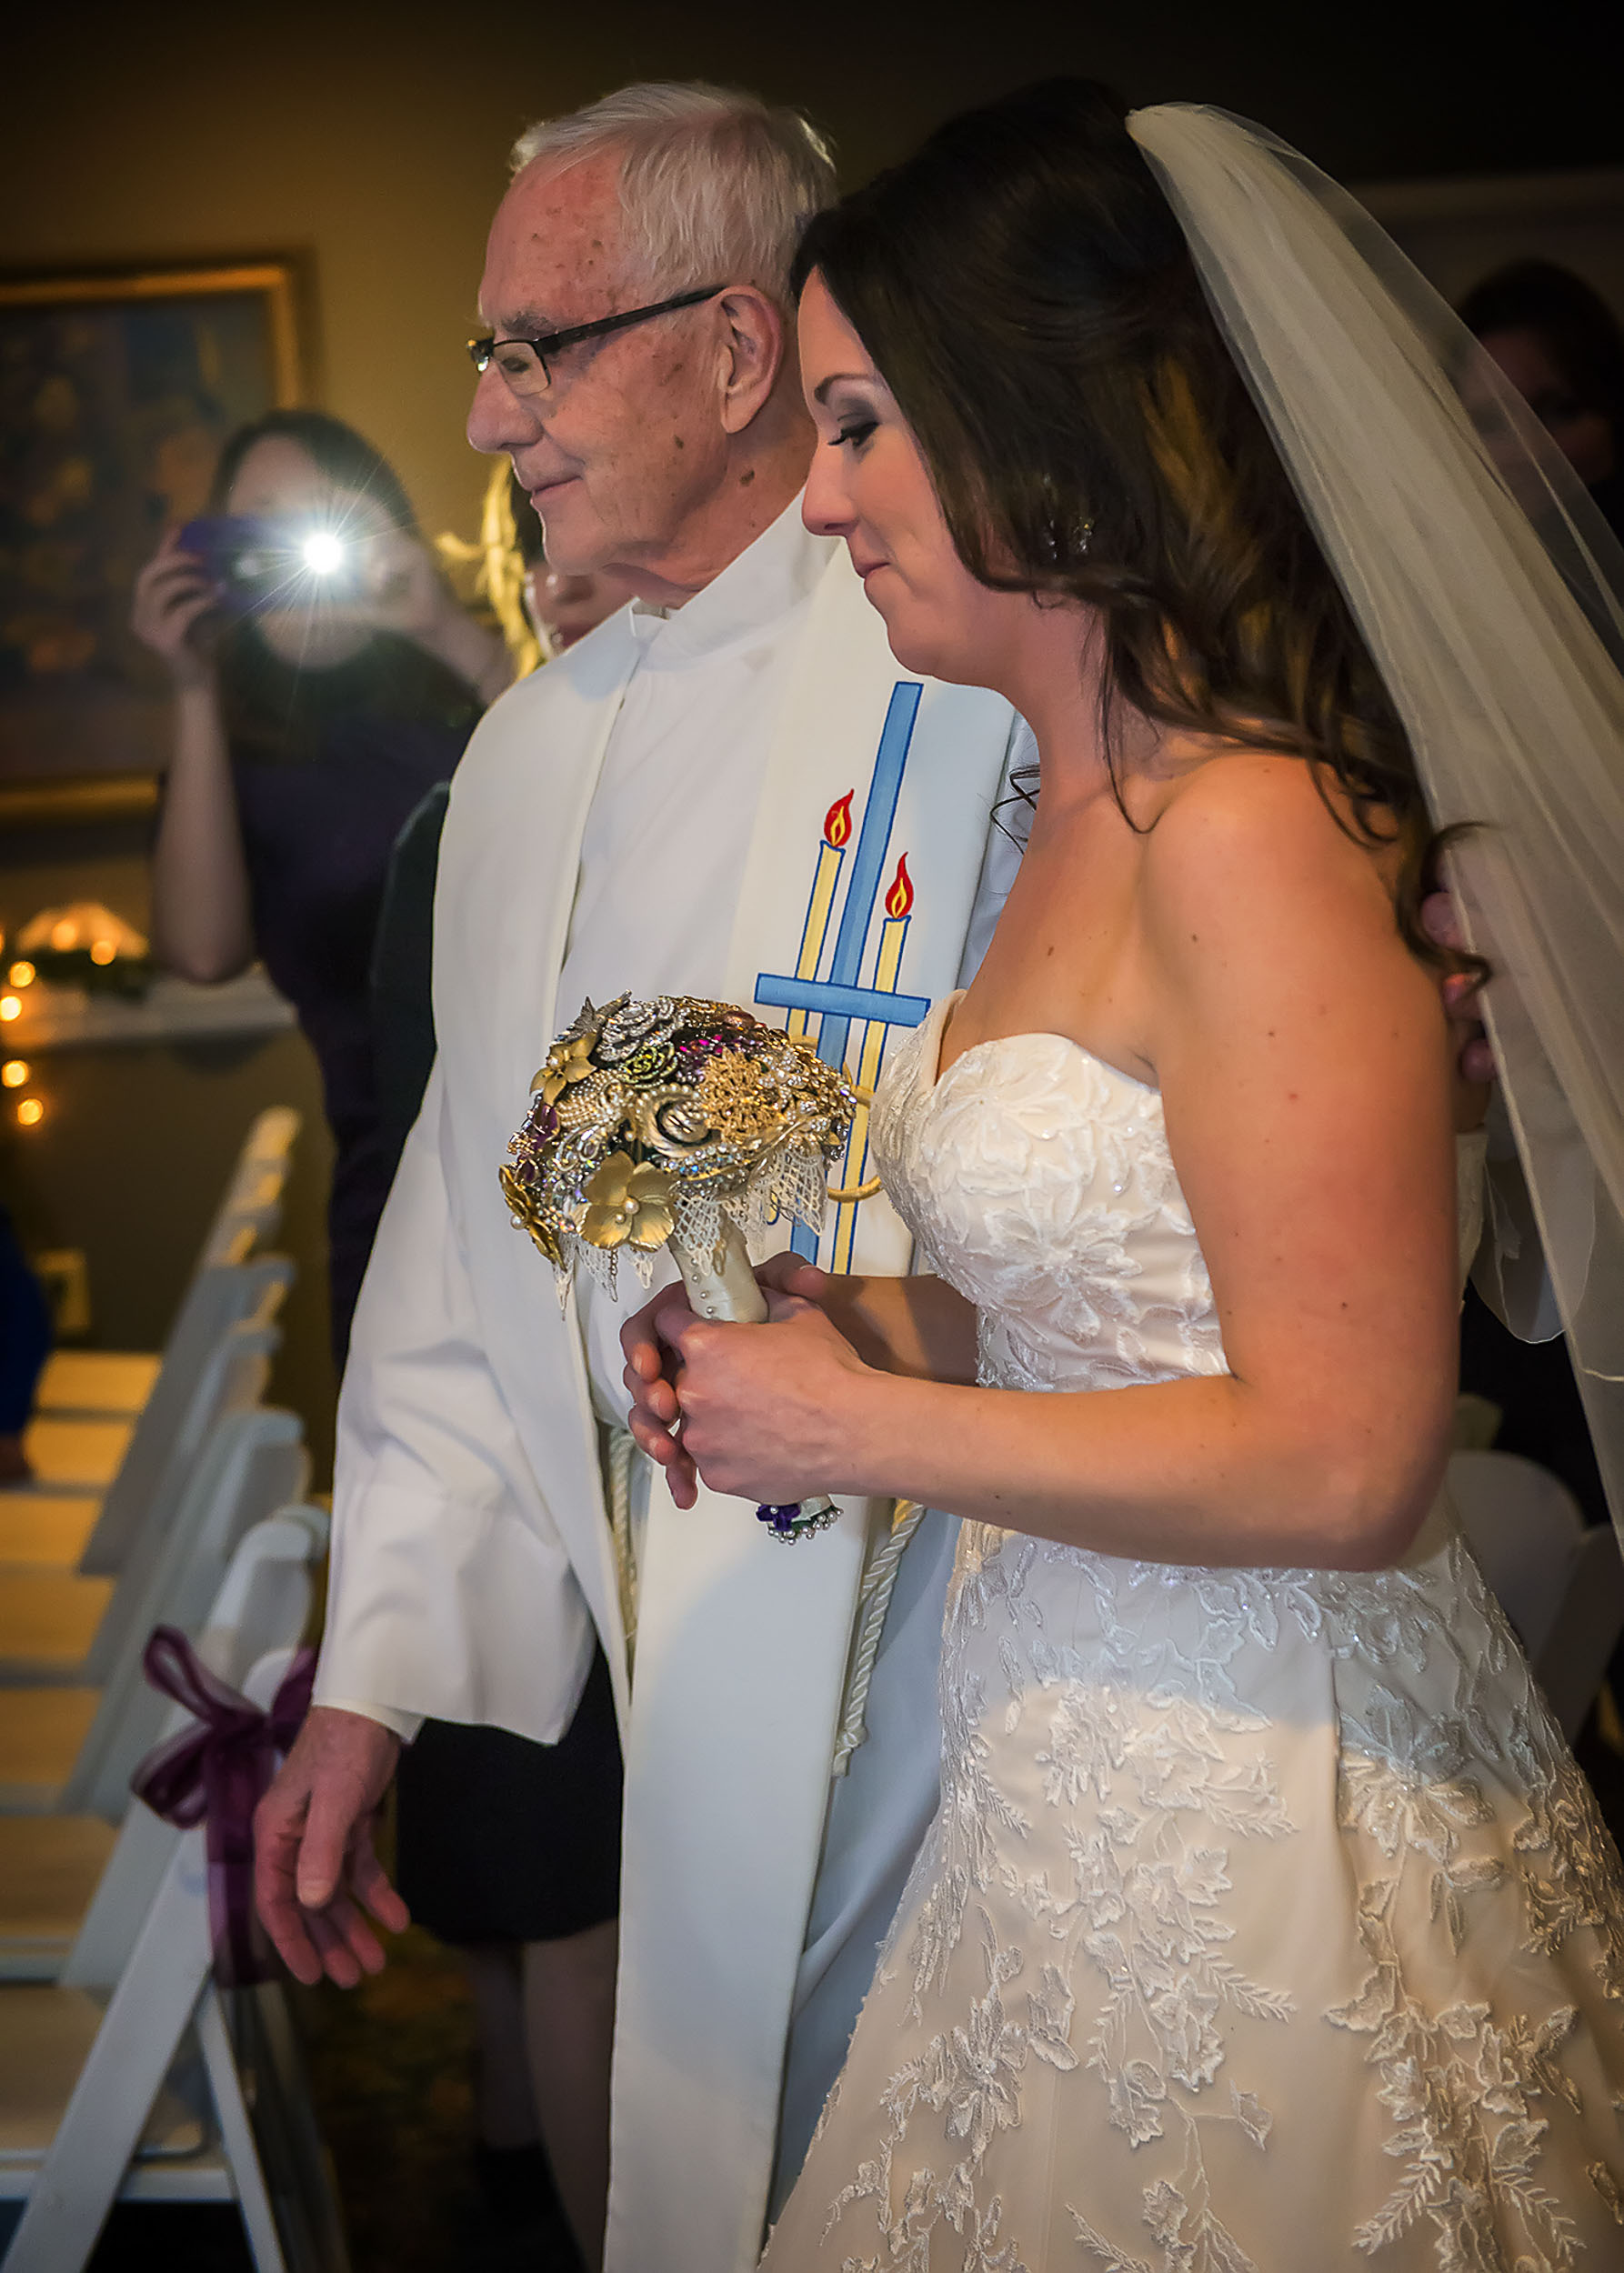 The officiant in this photo is also the bride's father.  I love this moment as he walks her down the aisle to perform the ceremony, but unfortunately, the moment is ruined by the distracting flash in the background.